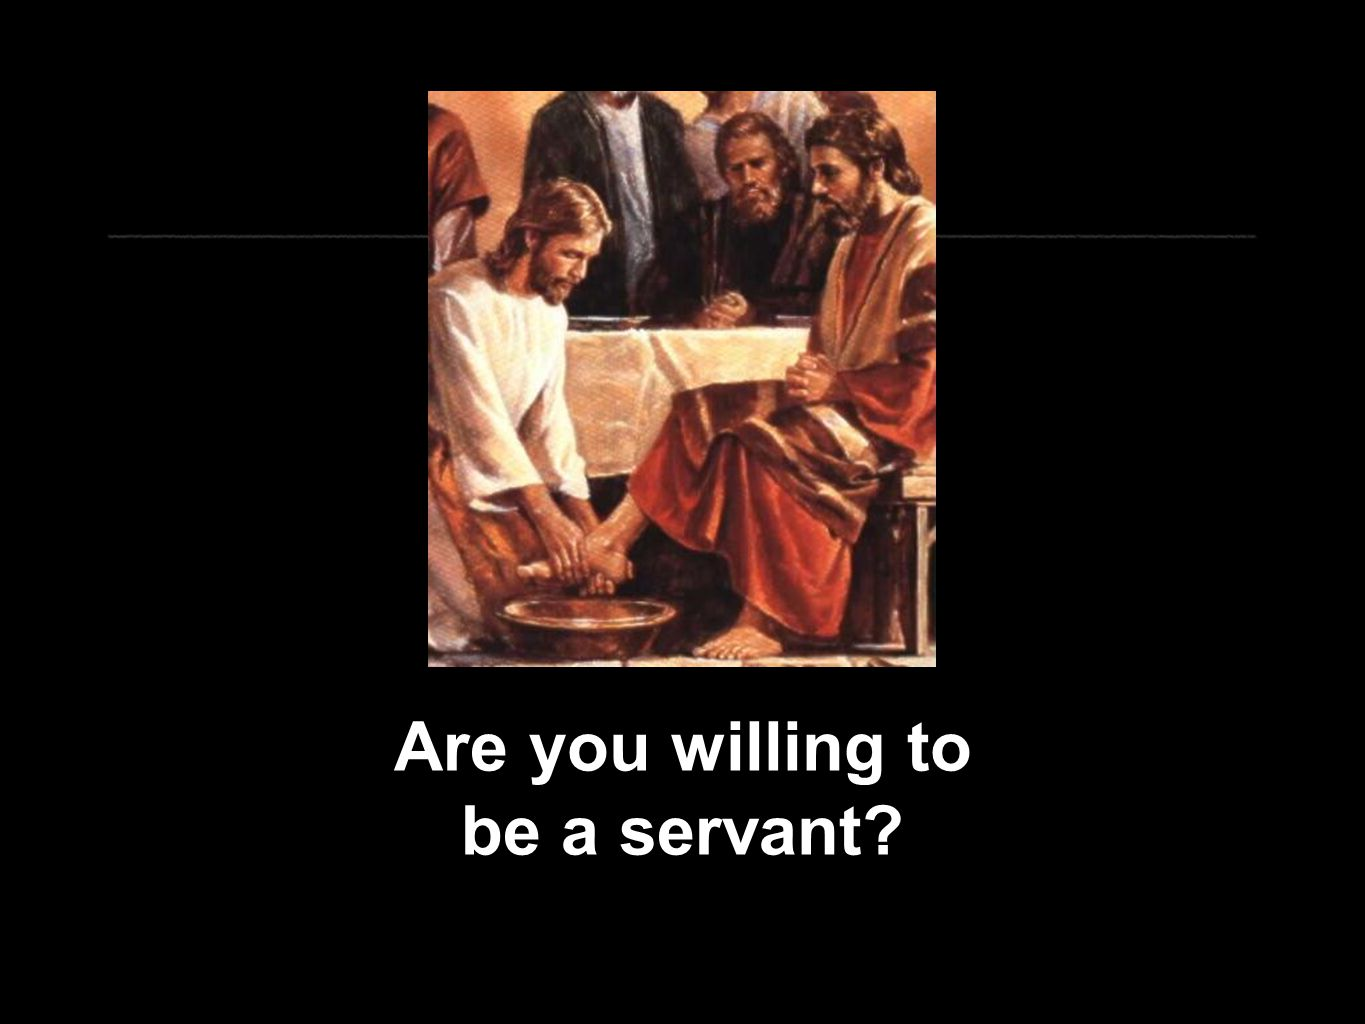 Are you willing to be a servant?